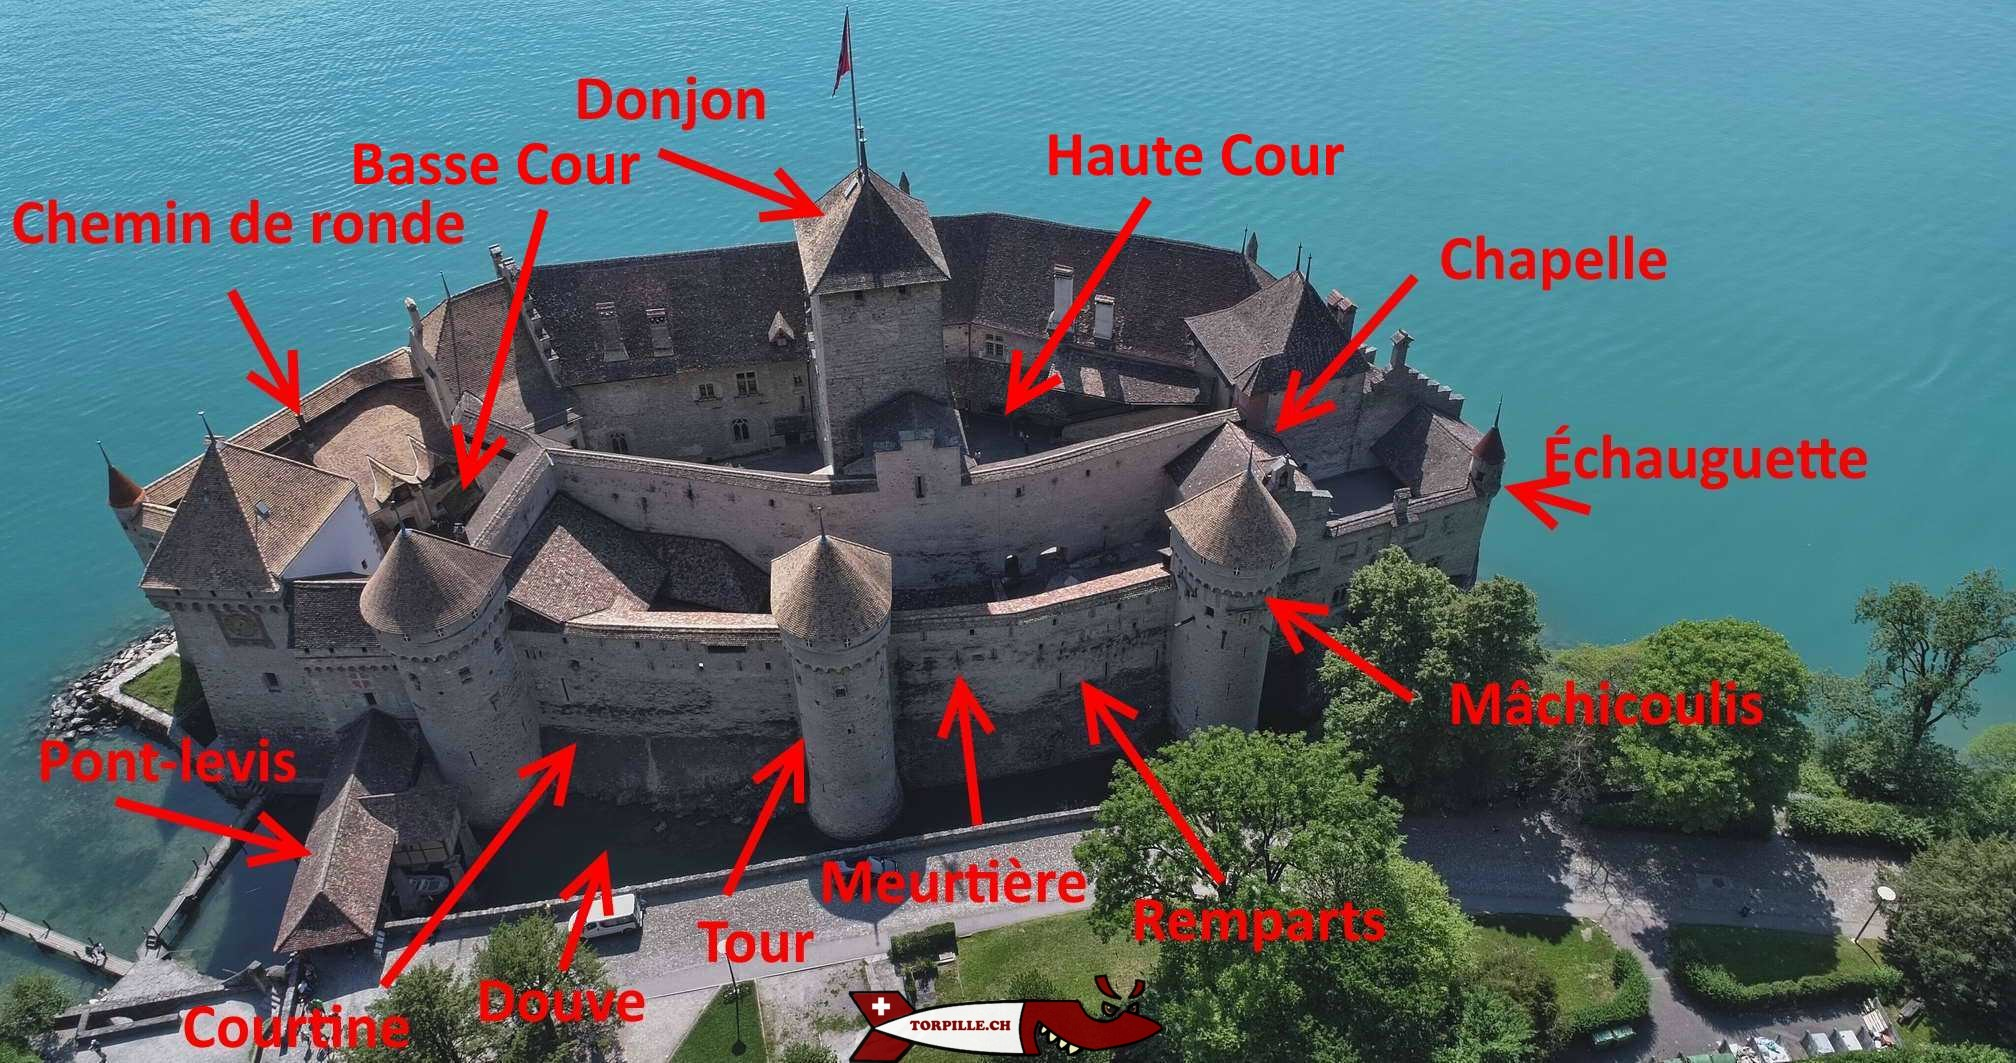 An aerial view of Chillon Castle with a description of its various elements.